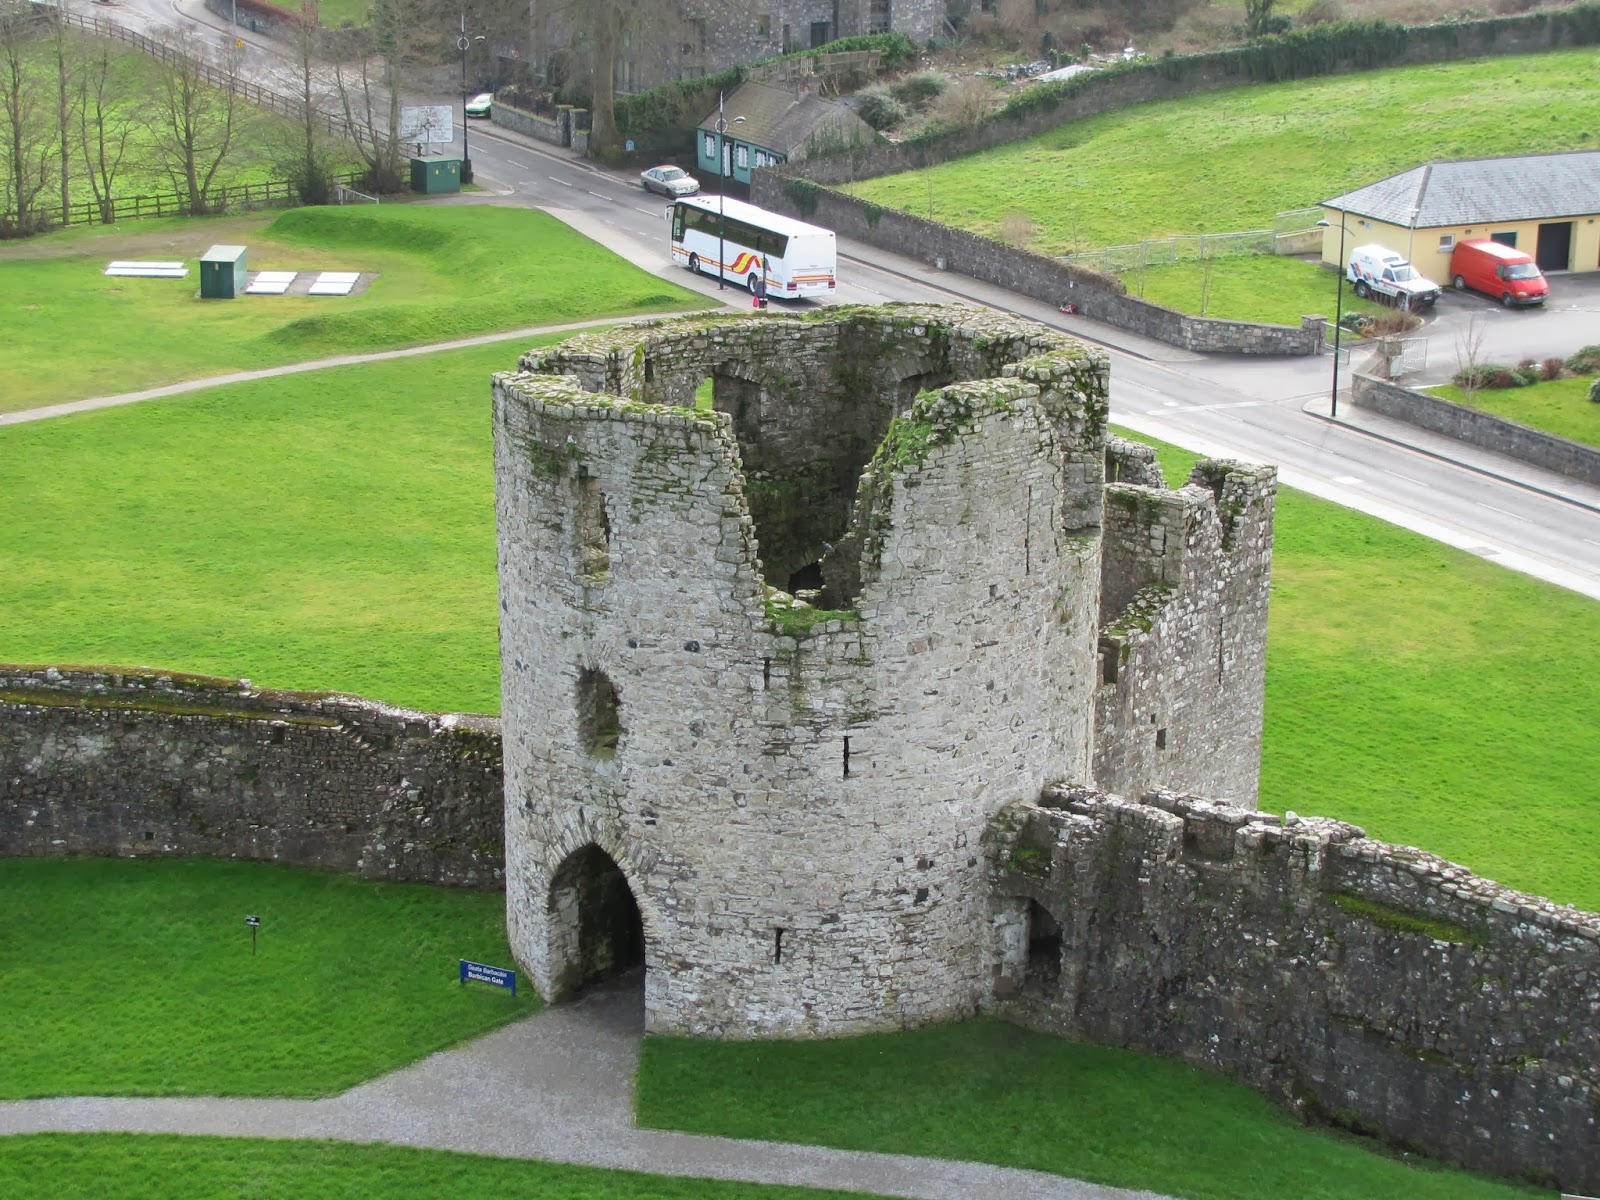 Barbican Gate at Trim Castle, Trim, Ireland